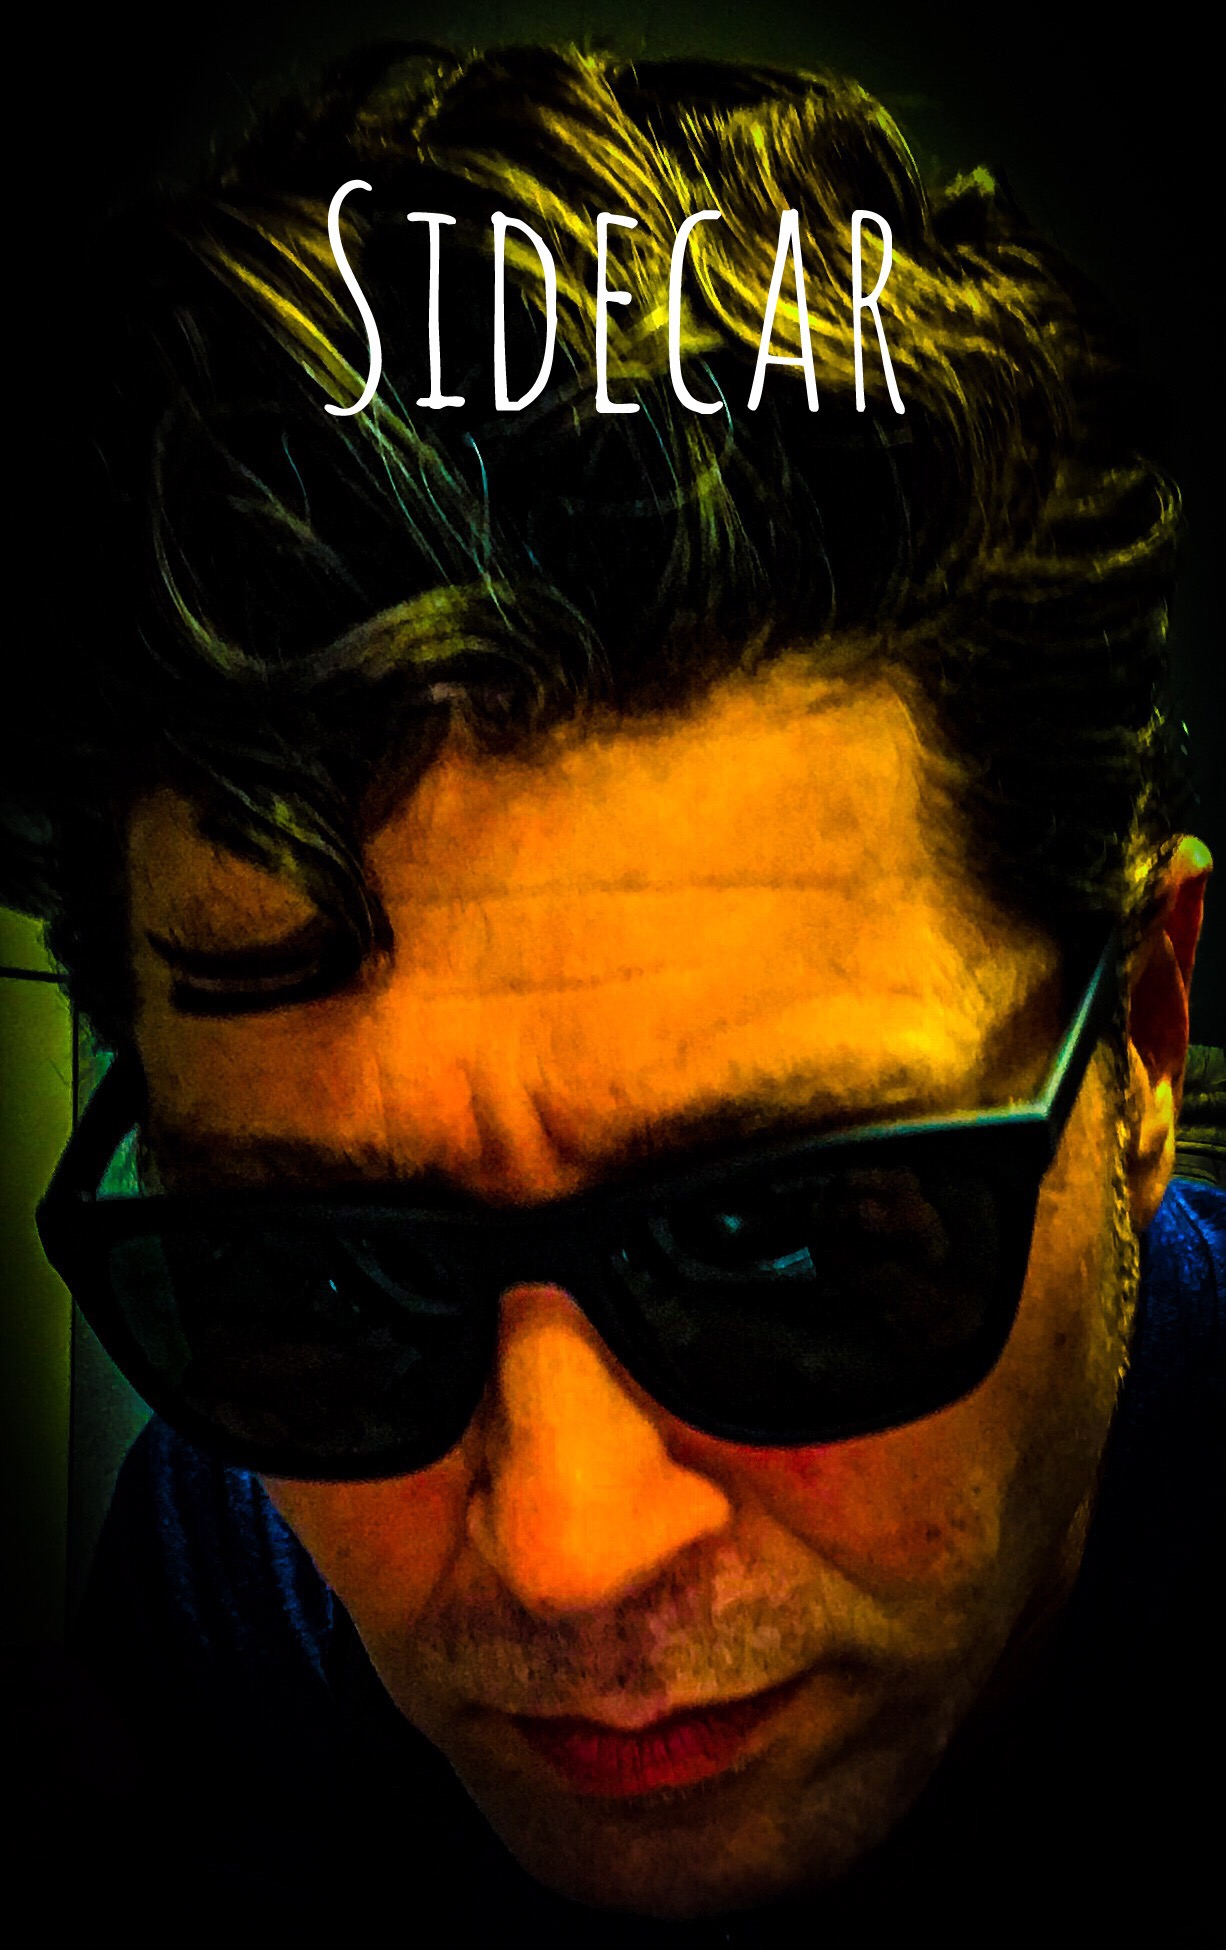 tim's tavern in seattle, friday, september 28 - Sidecar's opening for the amazing Hot Rod Red. Make plans now for this rad show!